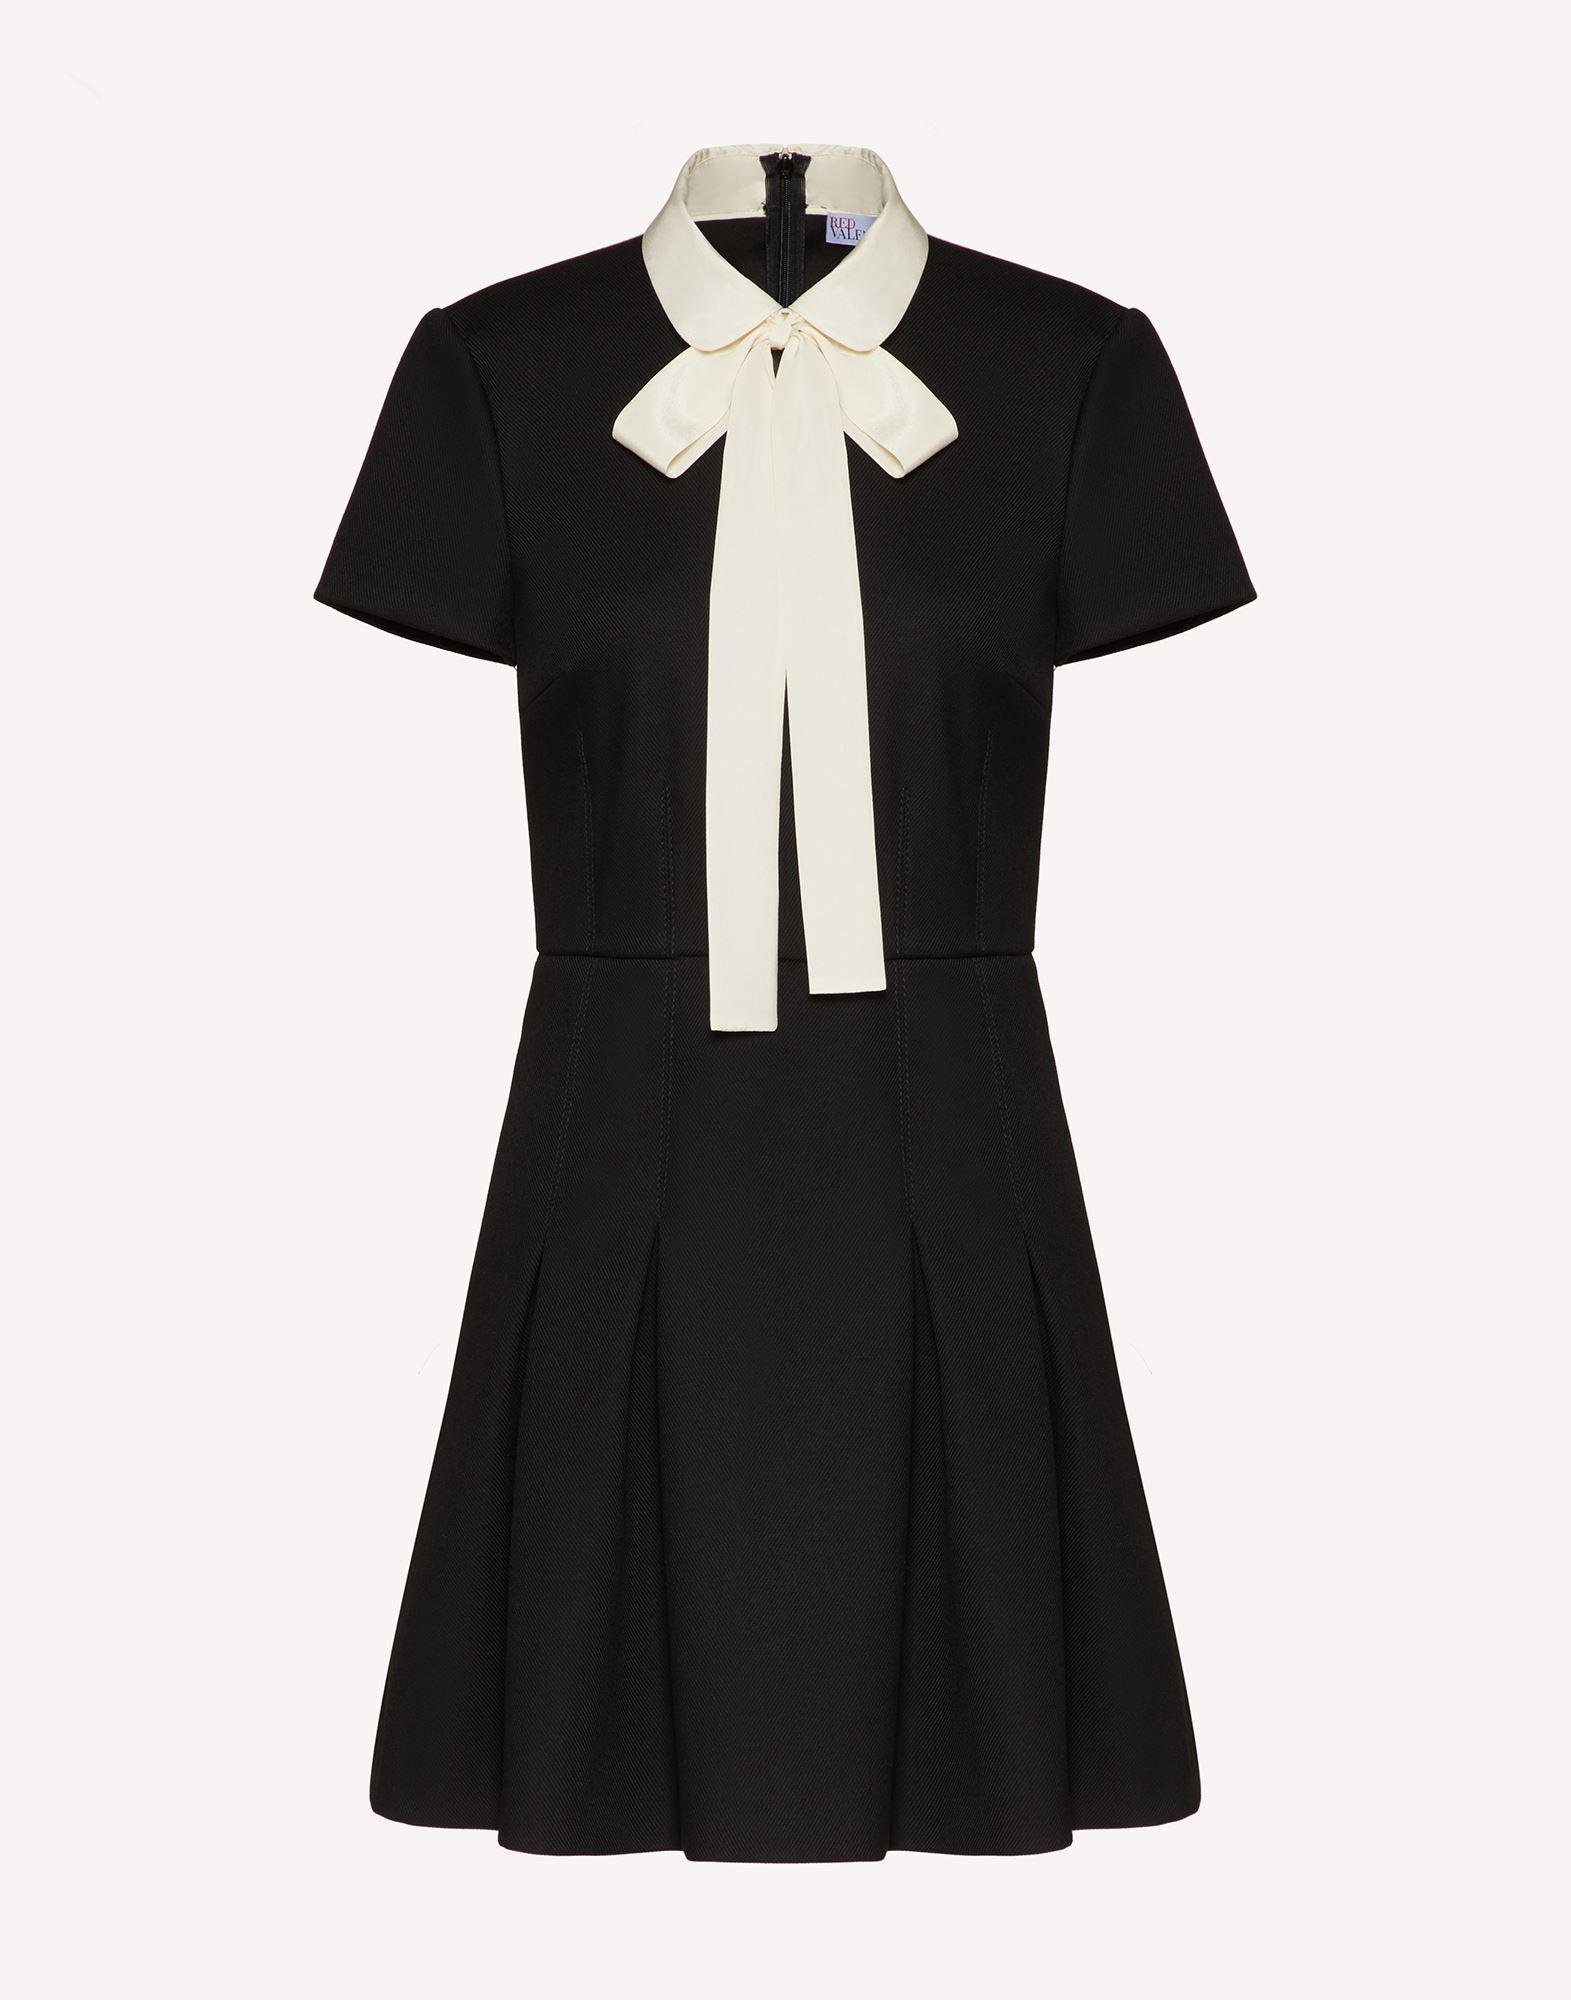 TRICOTINE DRESS WITH COLLAR DETAIL 4